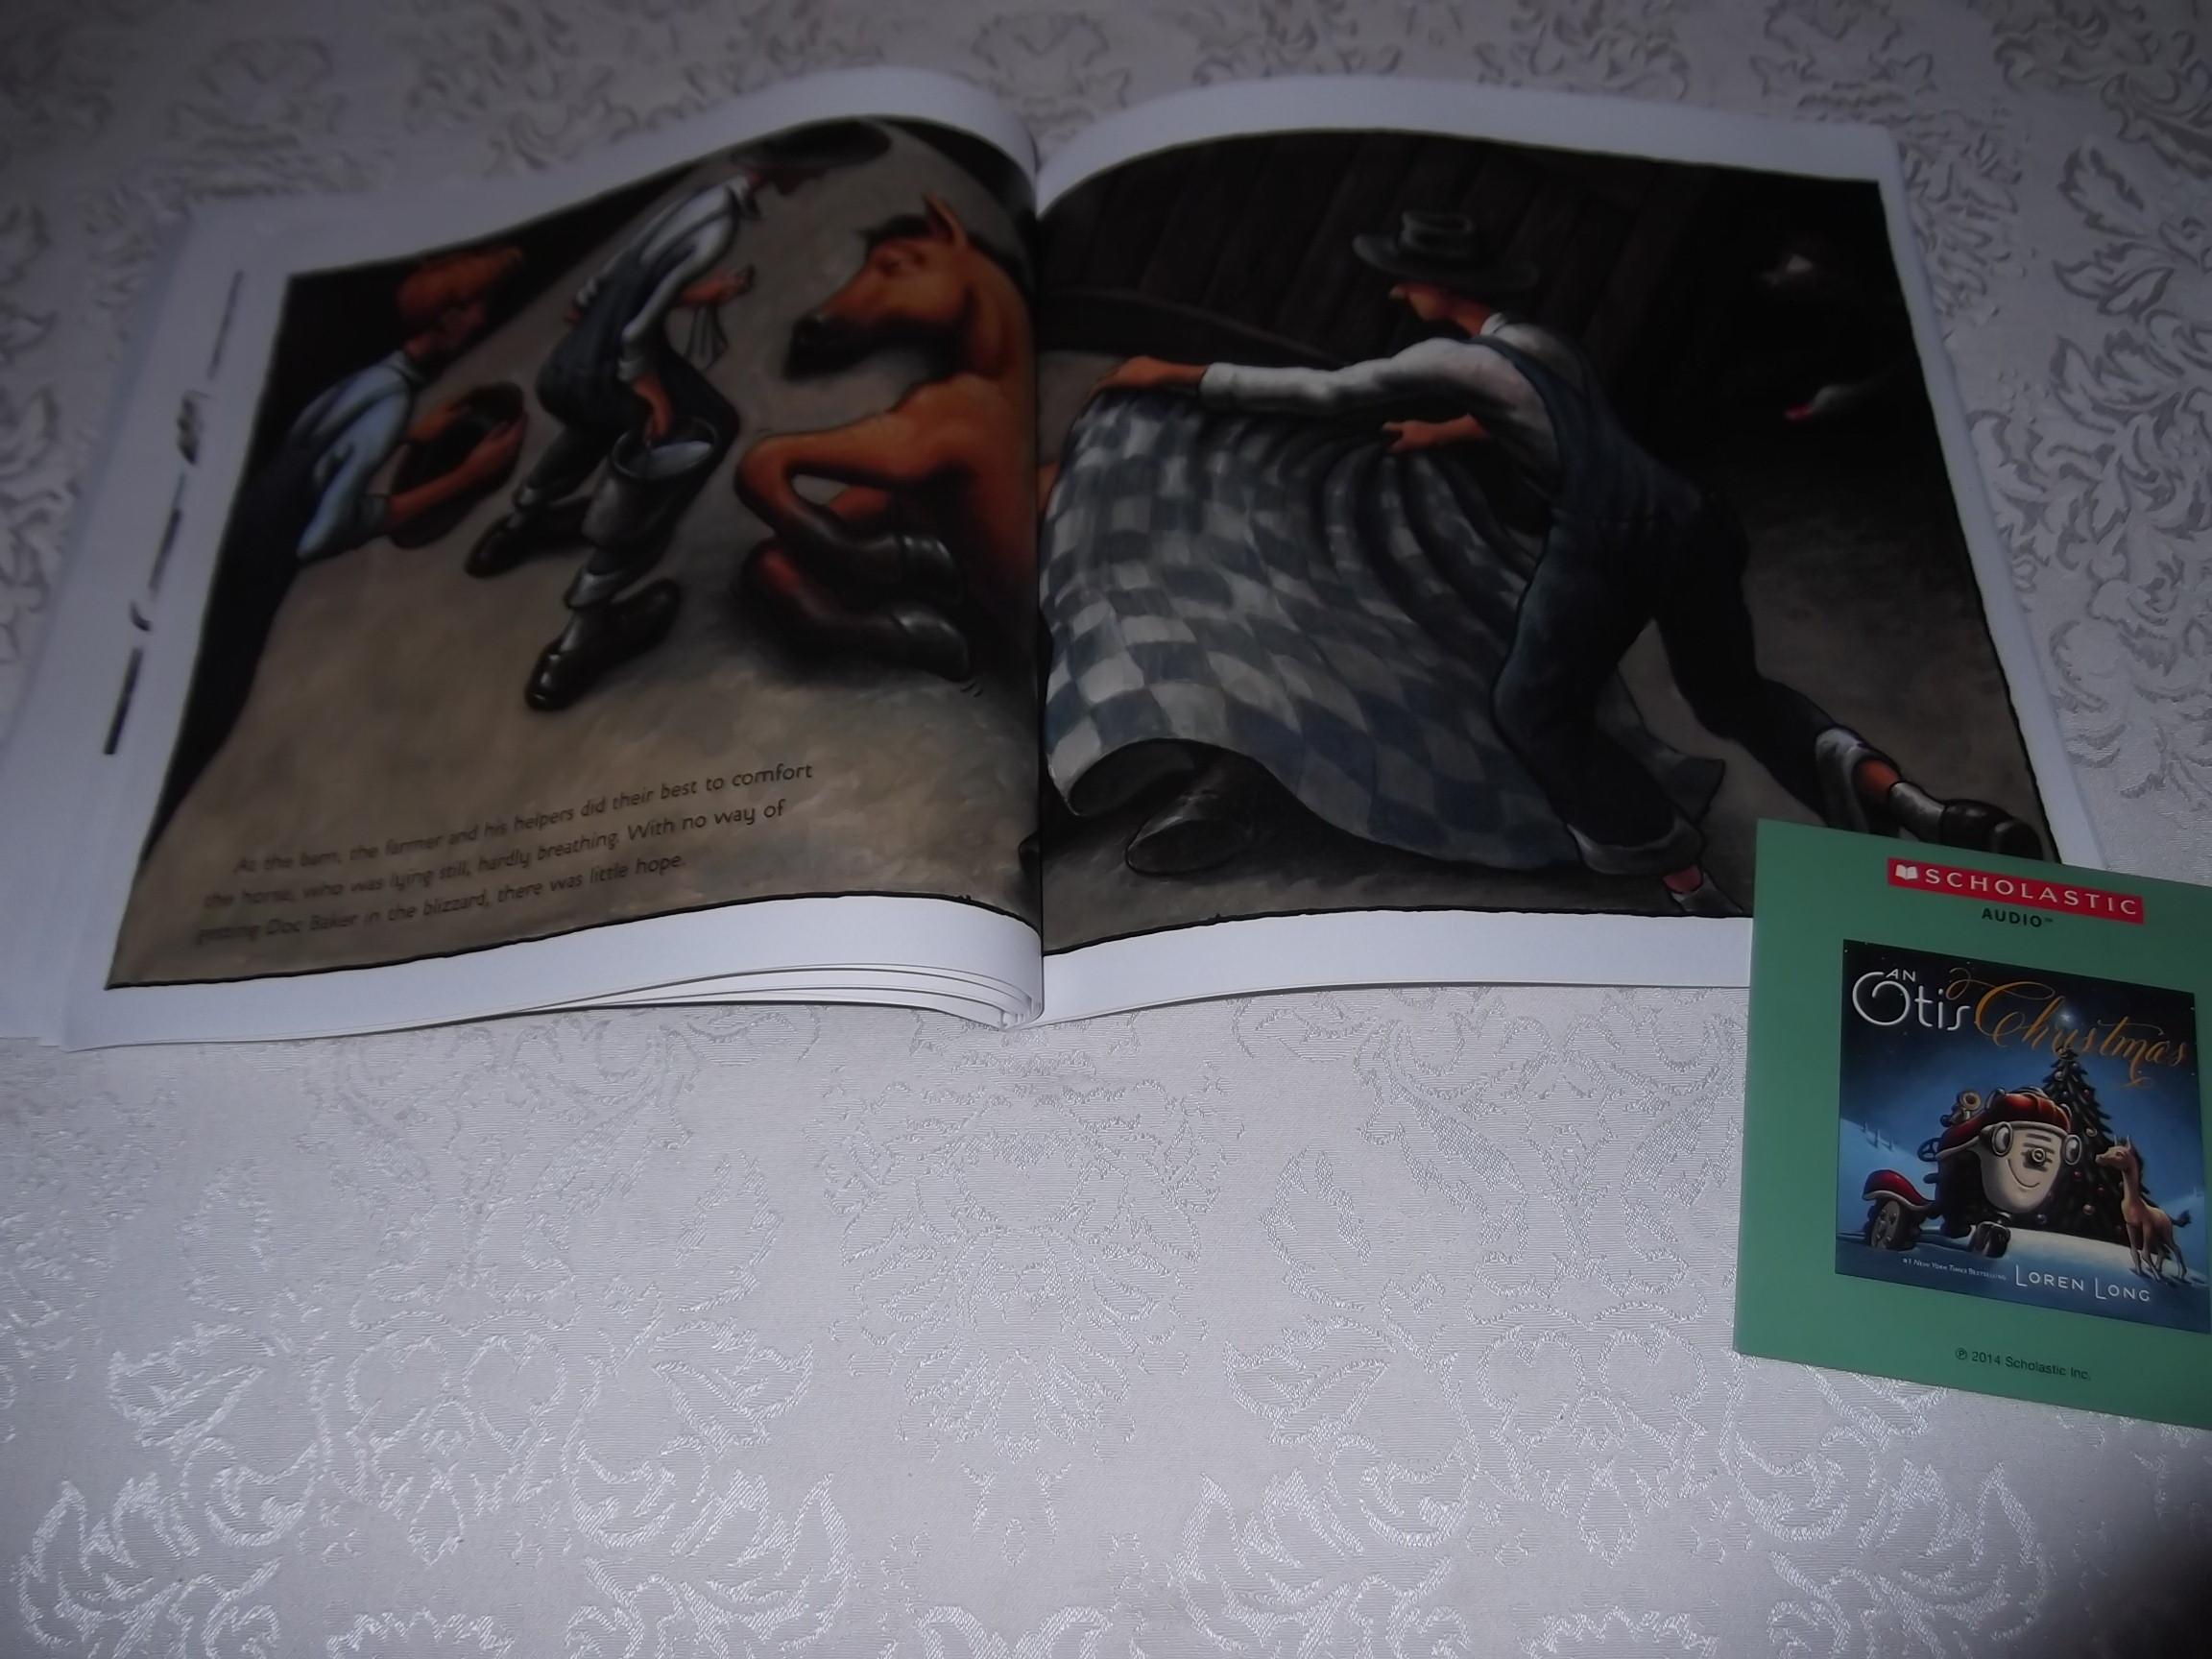 Image 6 of An Otis Christmas Loren Long Brand New Audio CD and Softcover